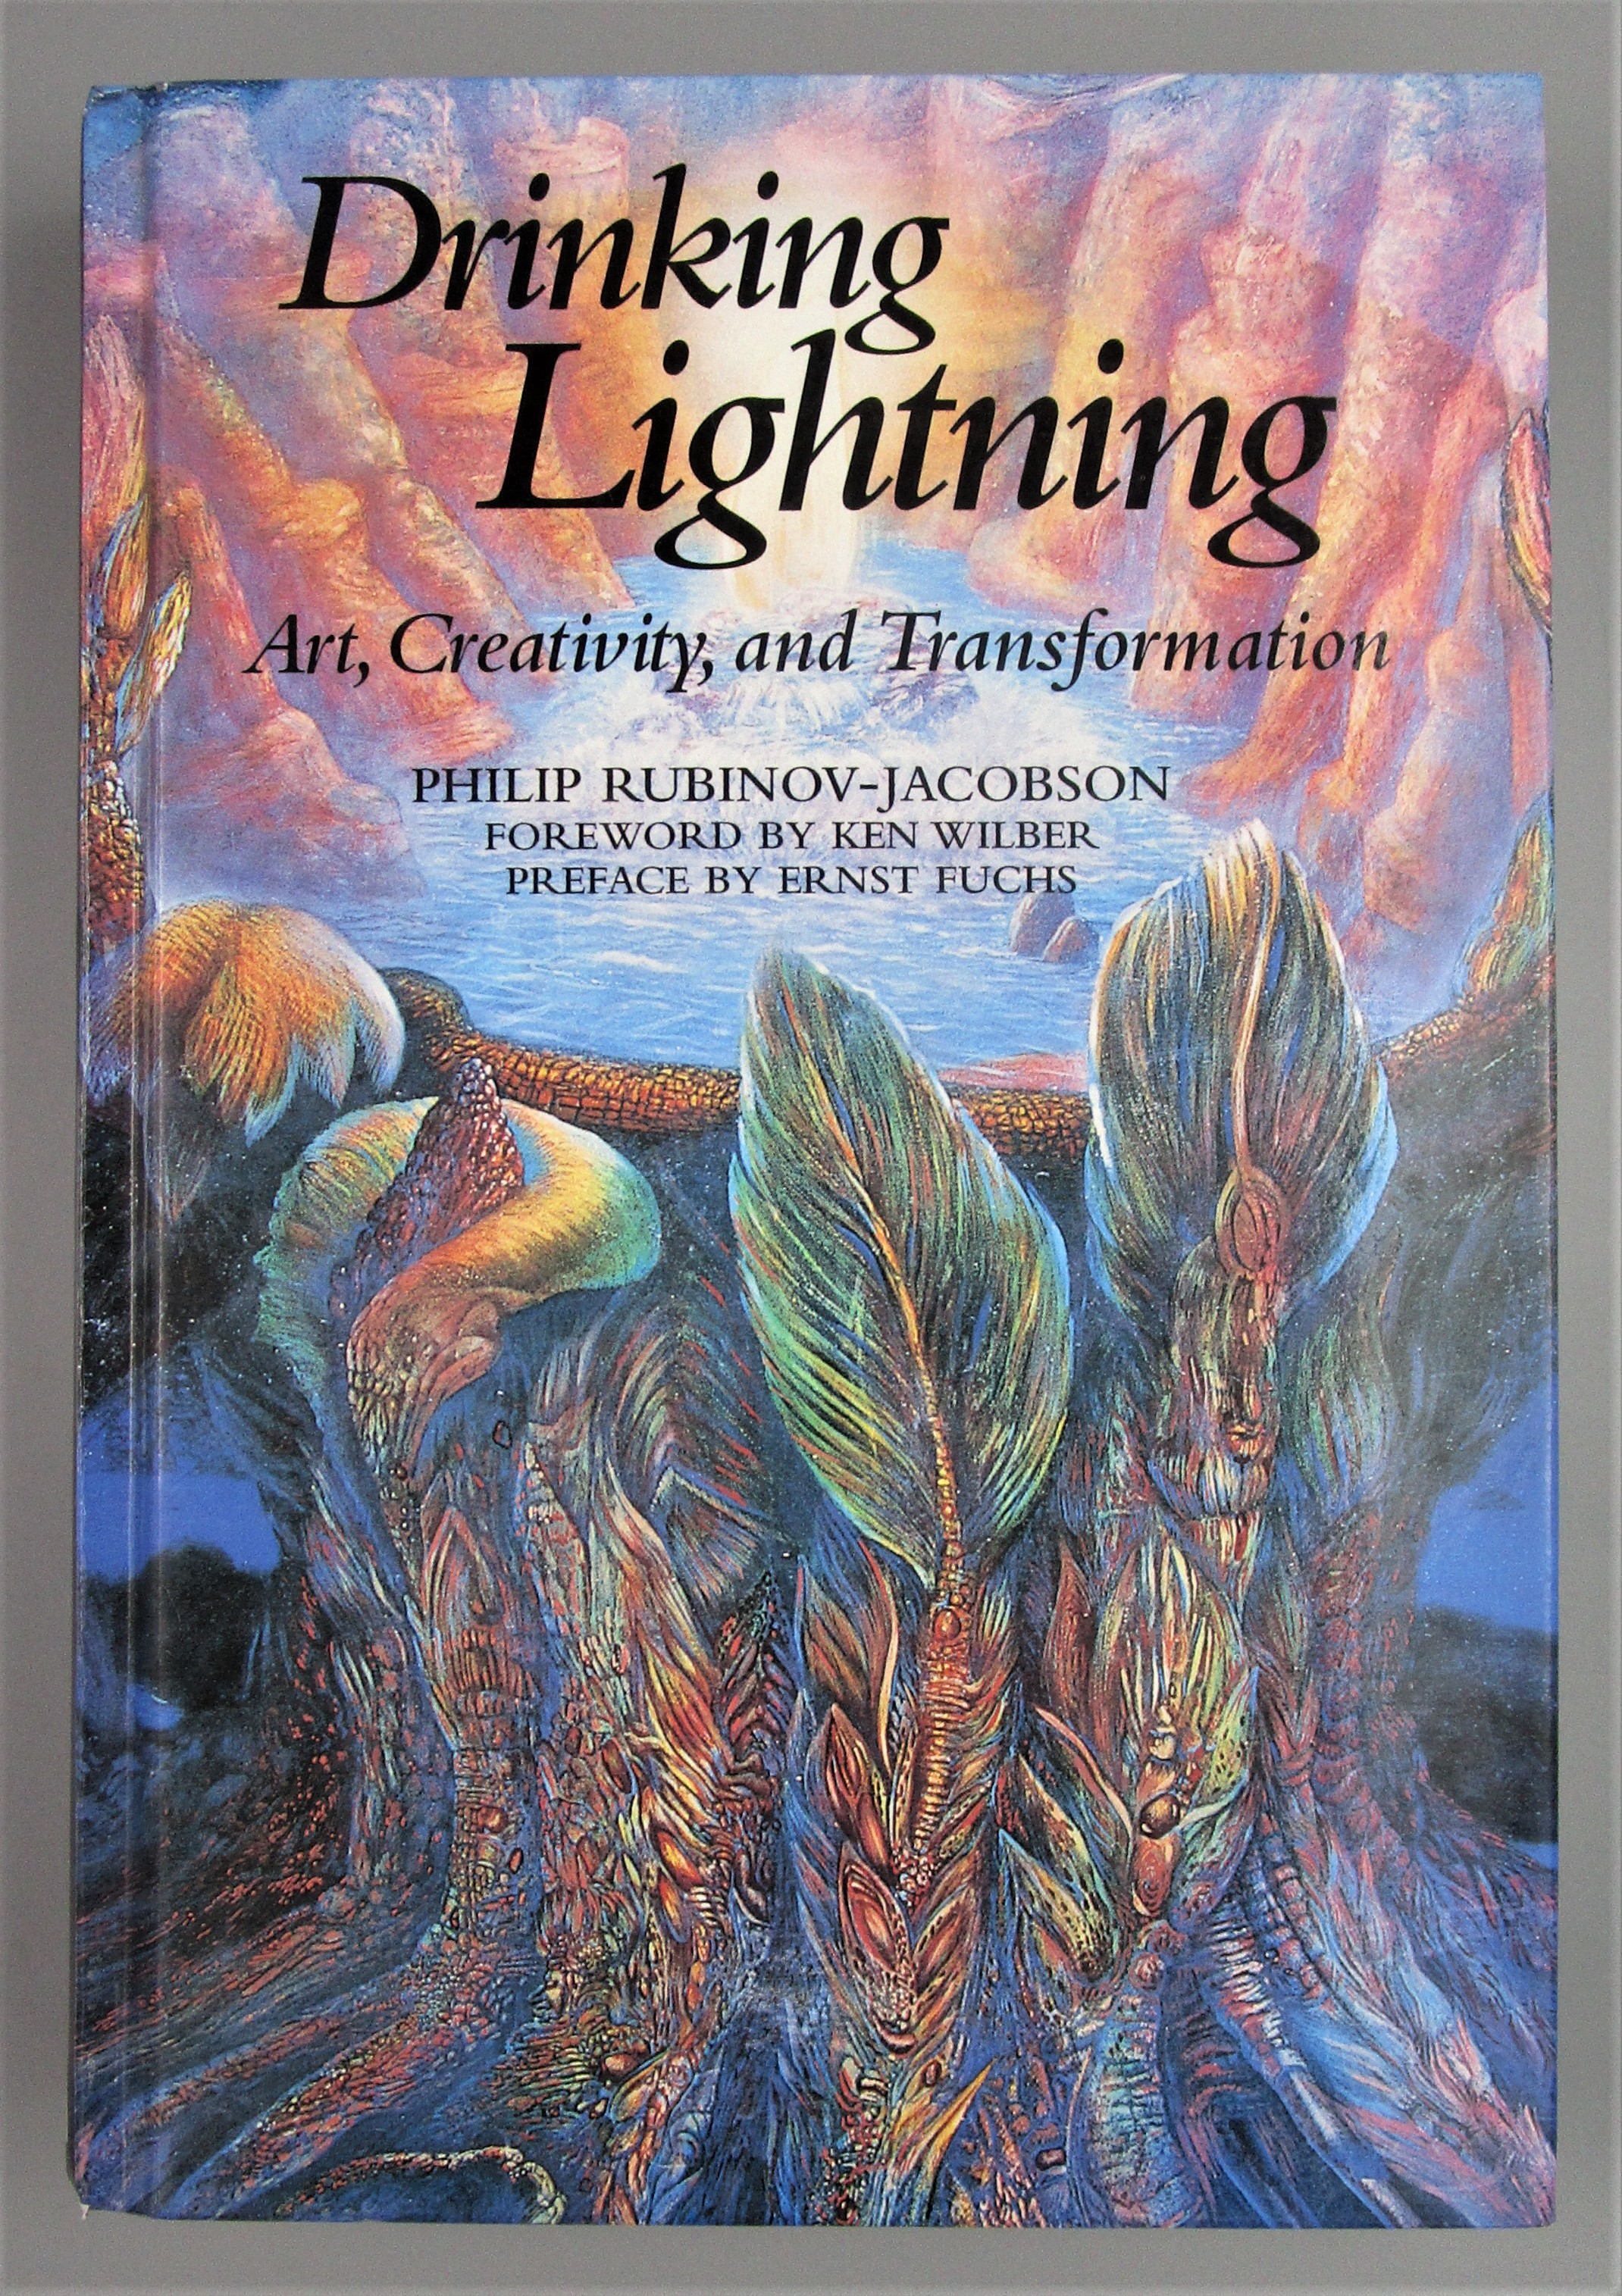 DRINKING LIGHTNING: ART, CREATIVITY, AND TRANSFORMATION, by Philip Rubinov-Jacobson - 2004 [Signed]